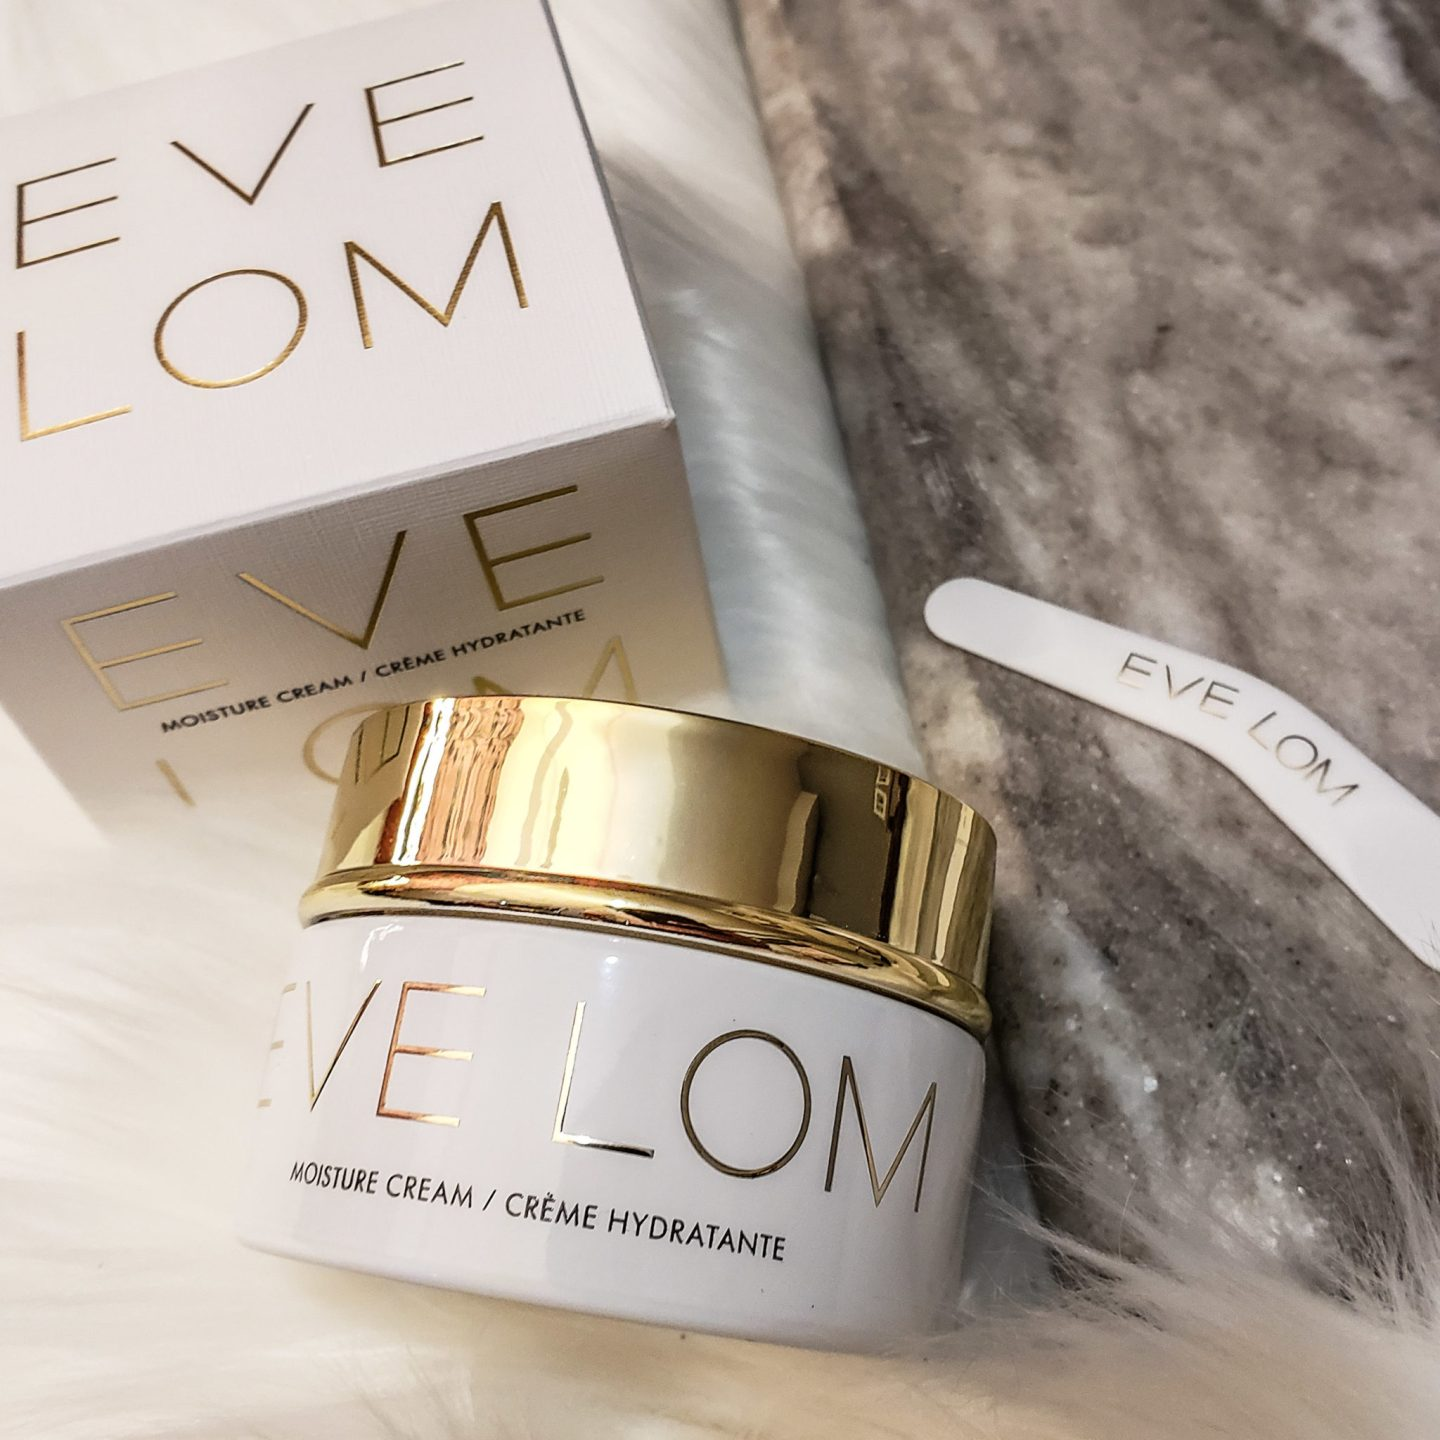 Skincare - Shopper's Drug Mart - Eve Lom Moisture Cream